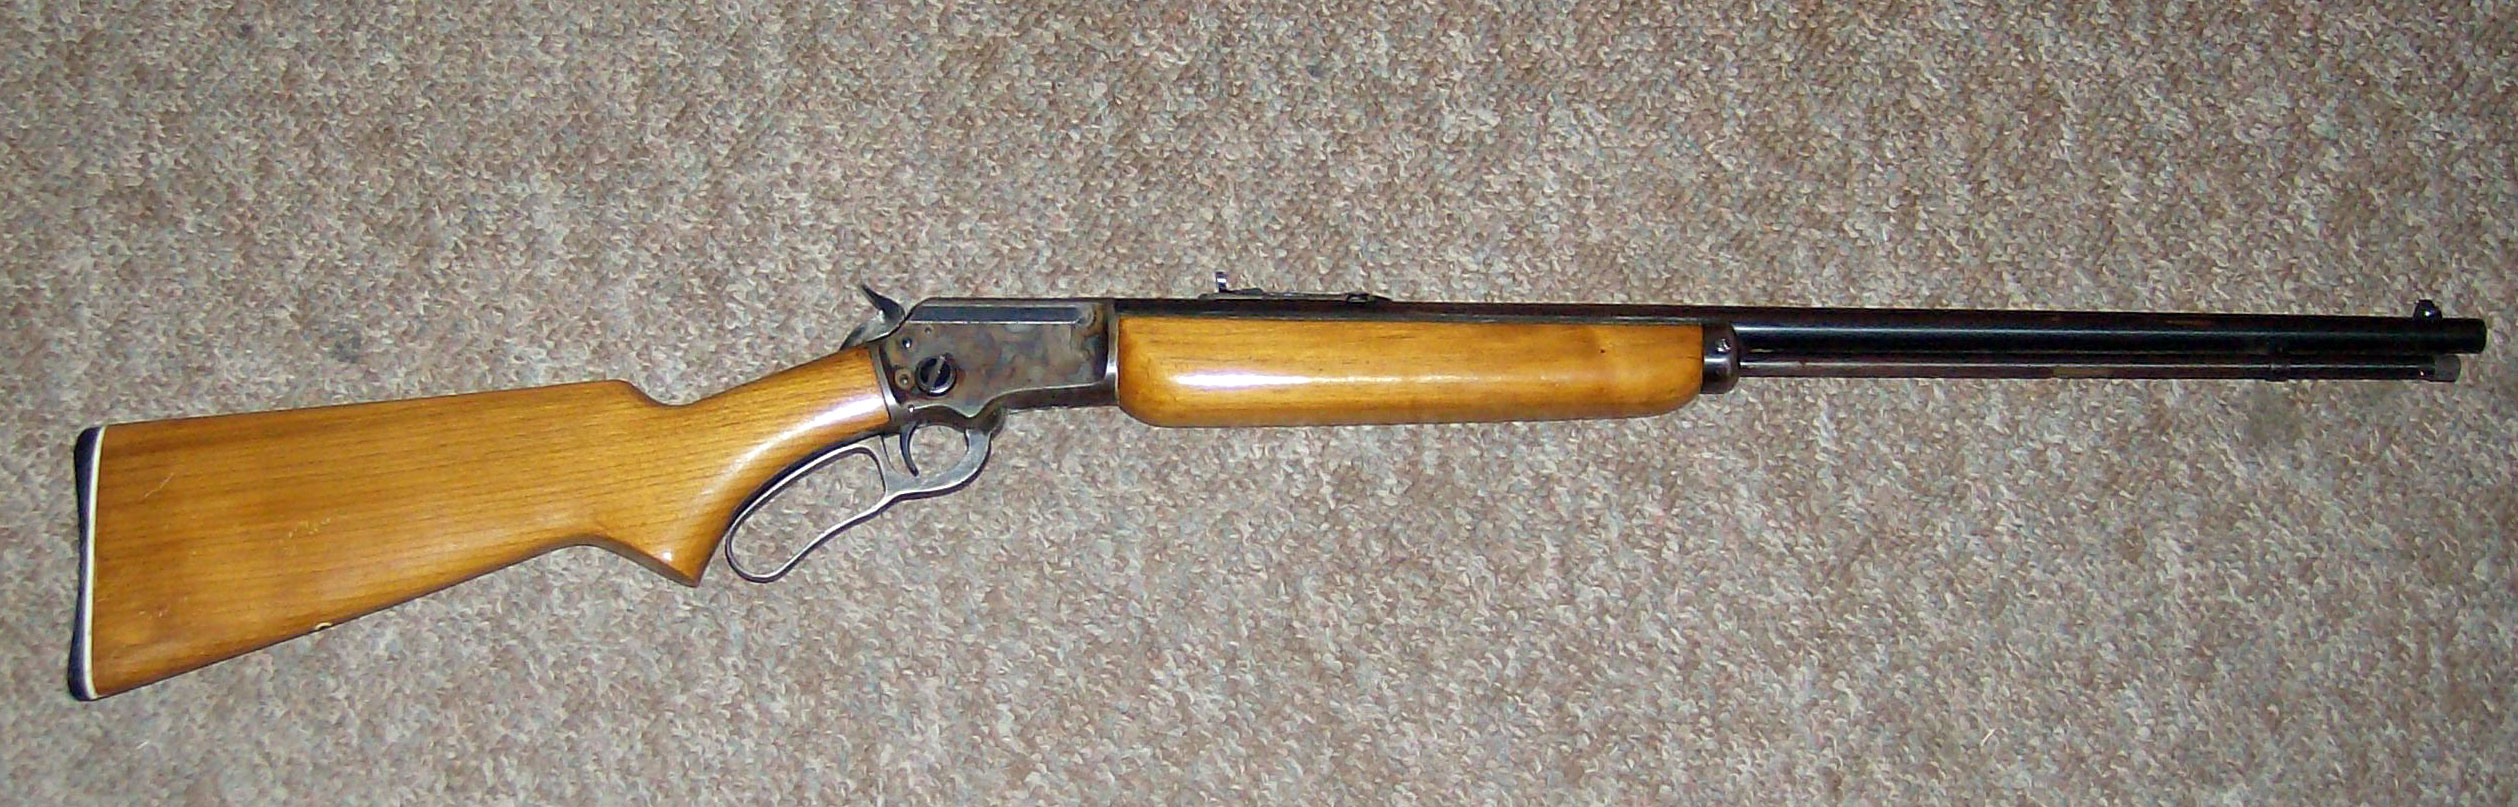 Marlin Model A Golden Mountie Witha Ring Ln The Barrel